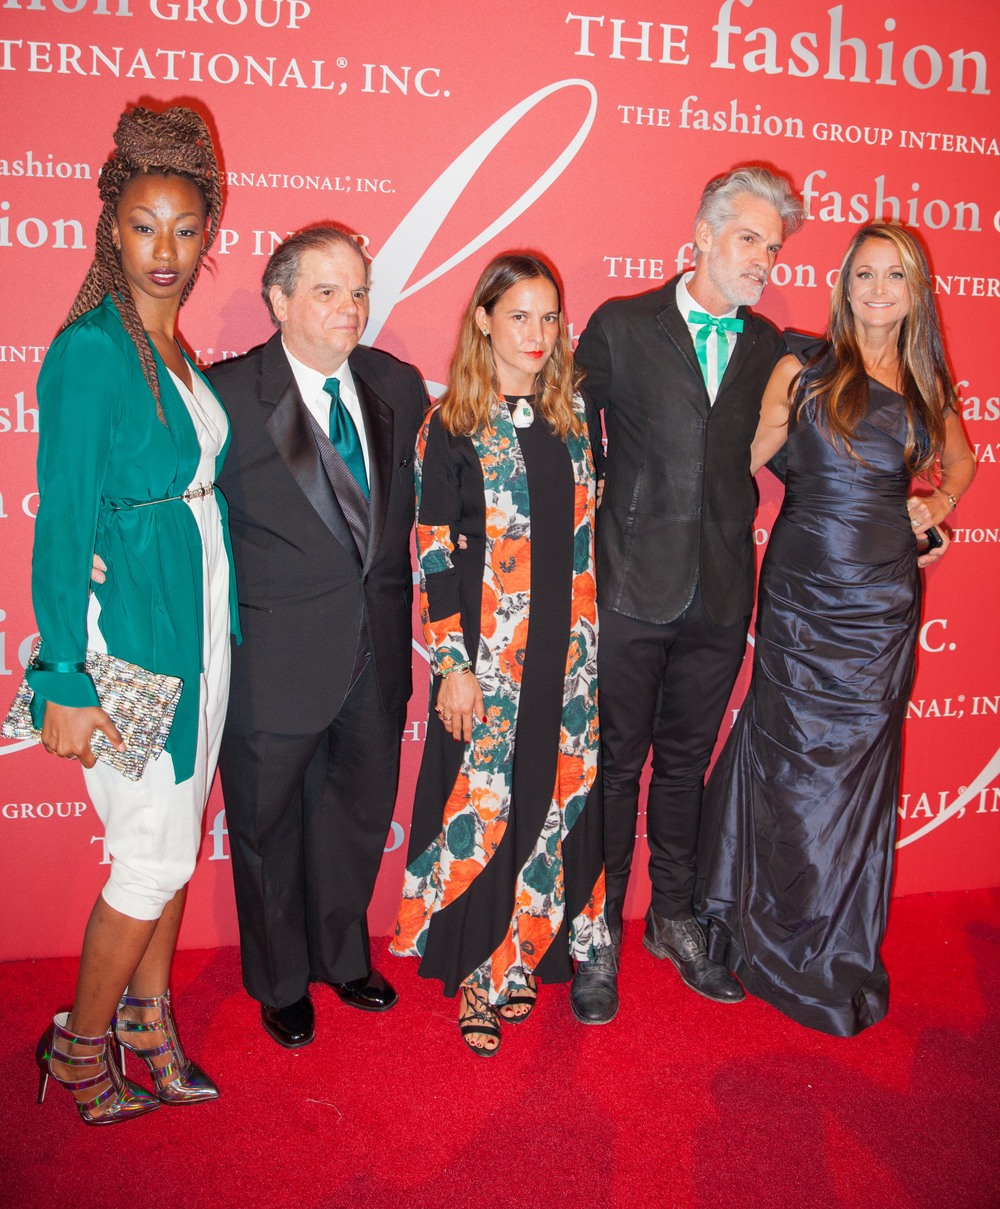 Marci Zaroff at the 2014 Fashion Group International Rising Star Awards with Dominique Drakeford, Harvey Russack, and Kelley Blevins .